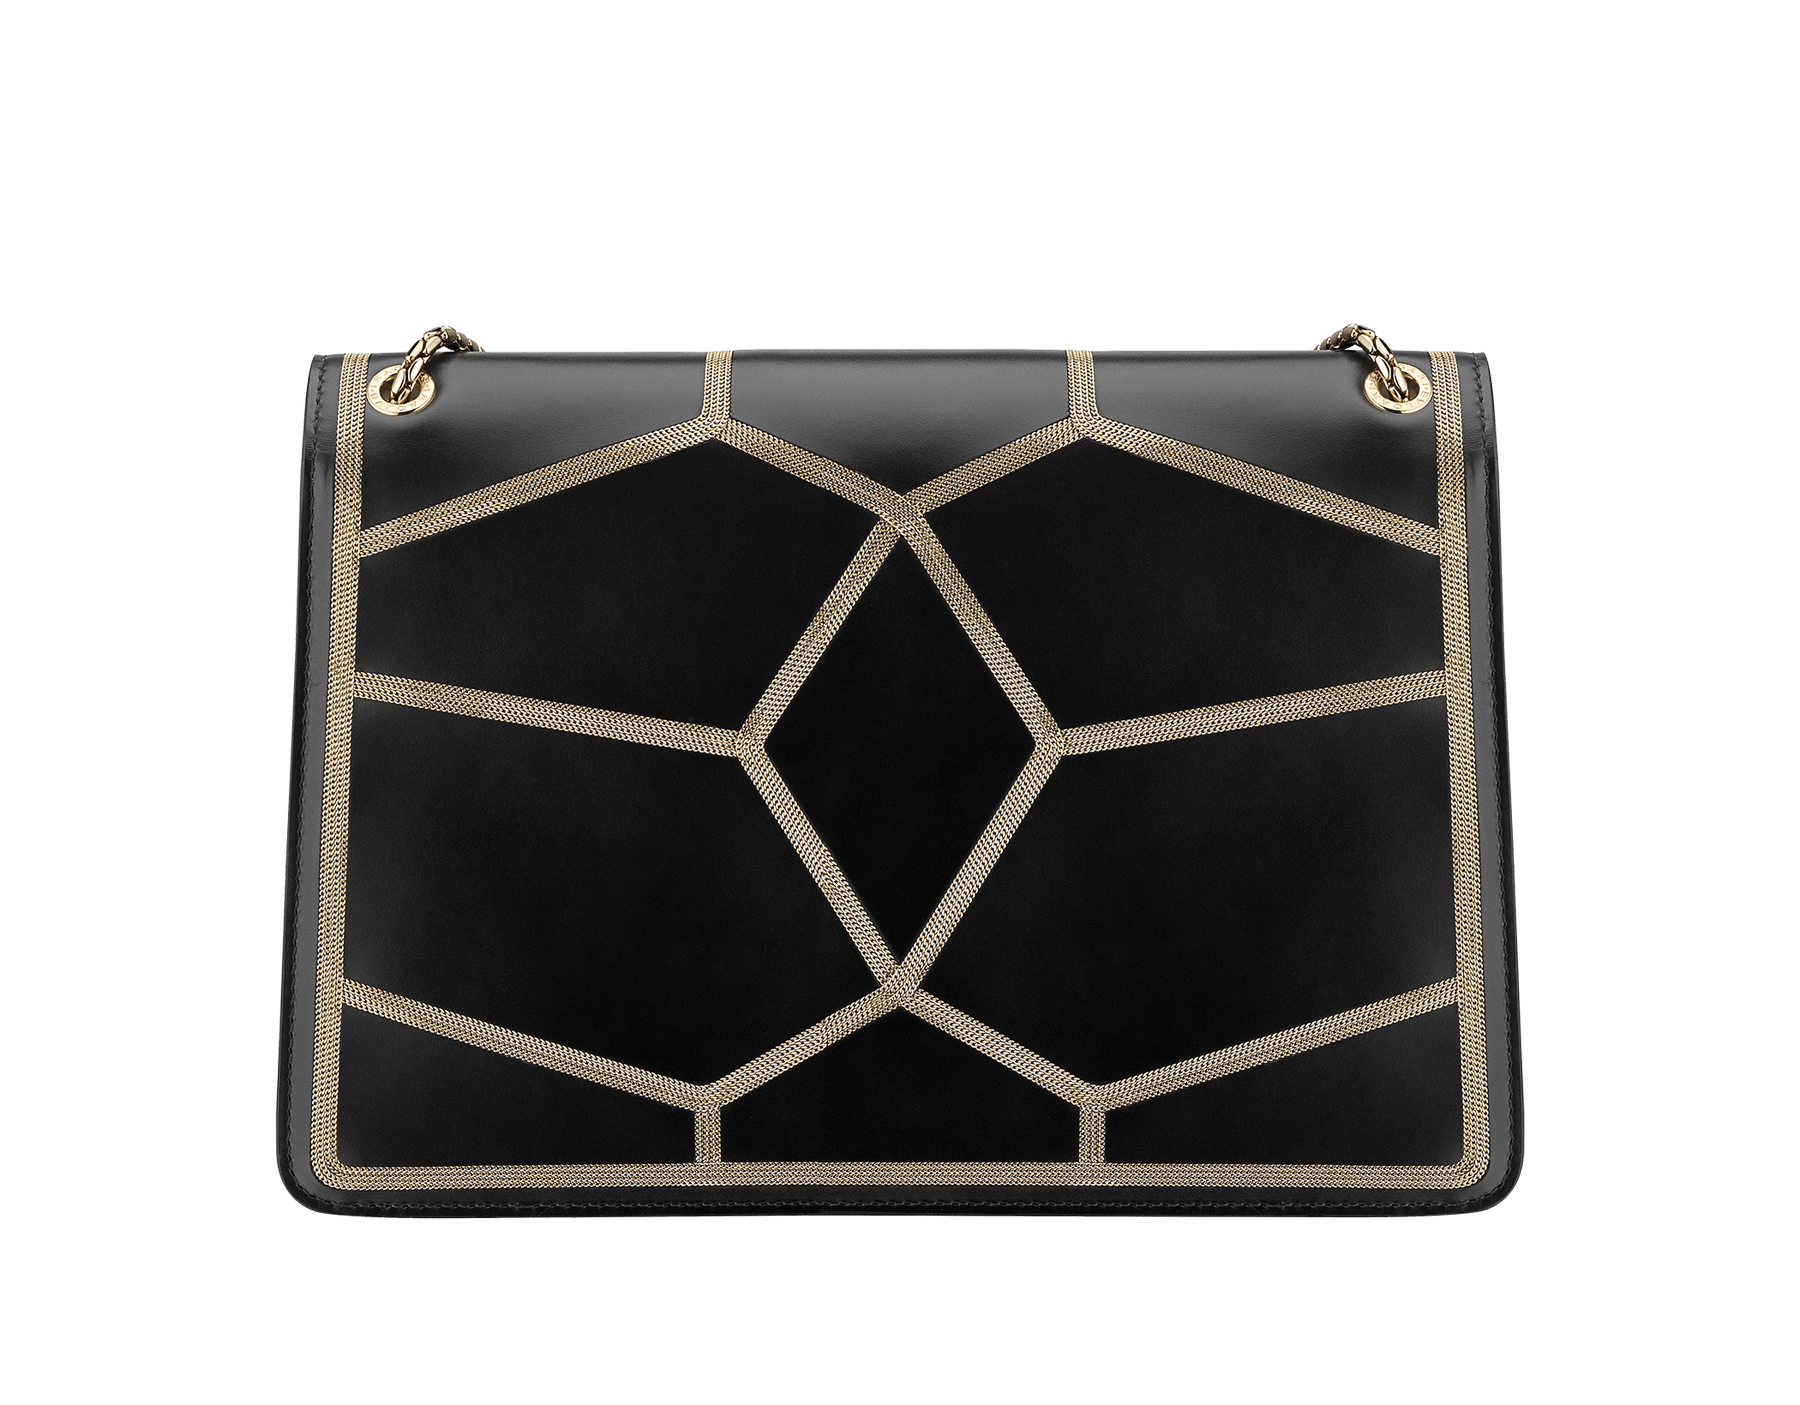 """Serpenti Forever"" shoulder bag in black calf leather and Million Chain frame body and black calf leather sides. Iconic snake head closure in light gold-plated brass enriched with black enamel and black onyx eyes. 288925 image 3"